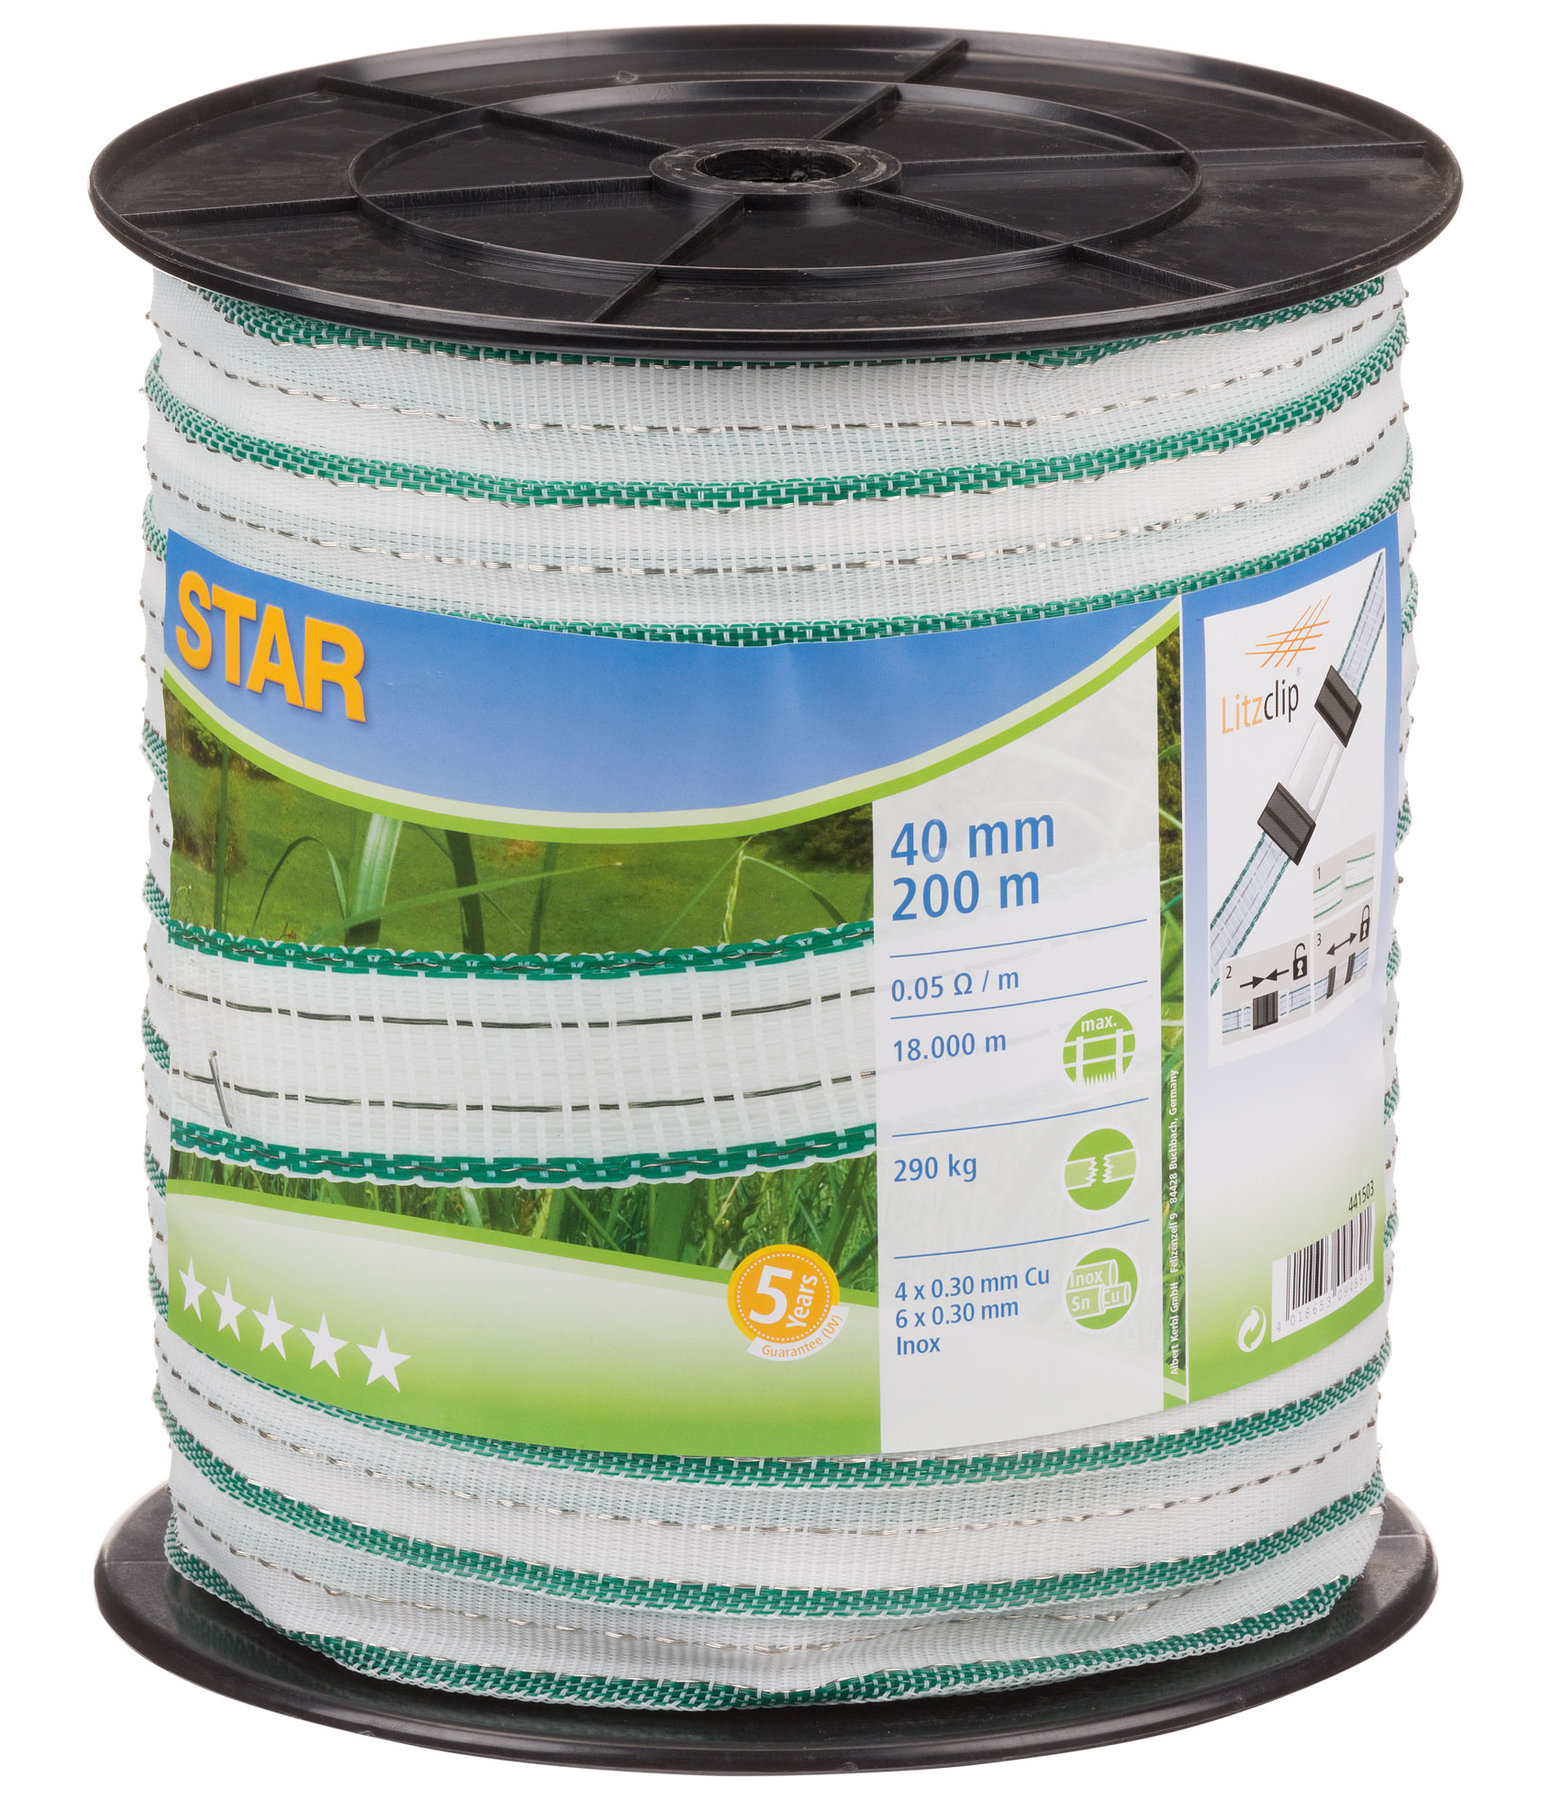 Electric Fence Tape Star Class DeLuxe 40mm - 200m Roll